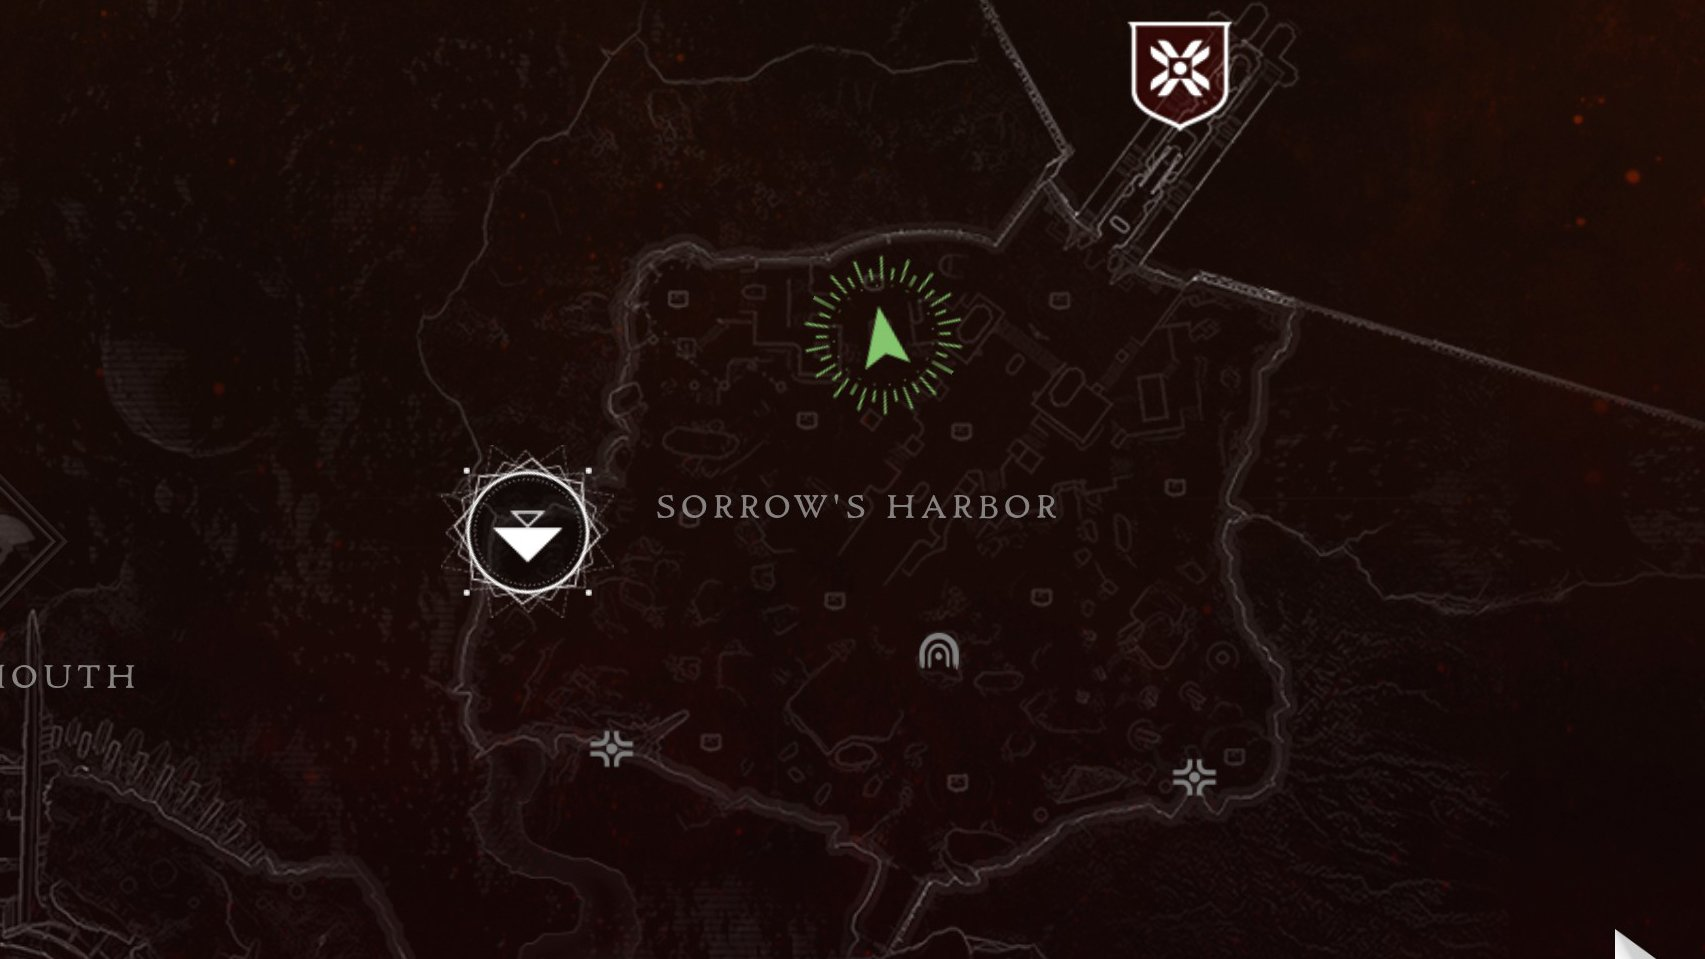 The Jade Rabbit in Sorrow's Harbor is nestled between some fallen rocks at this location